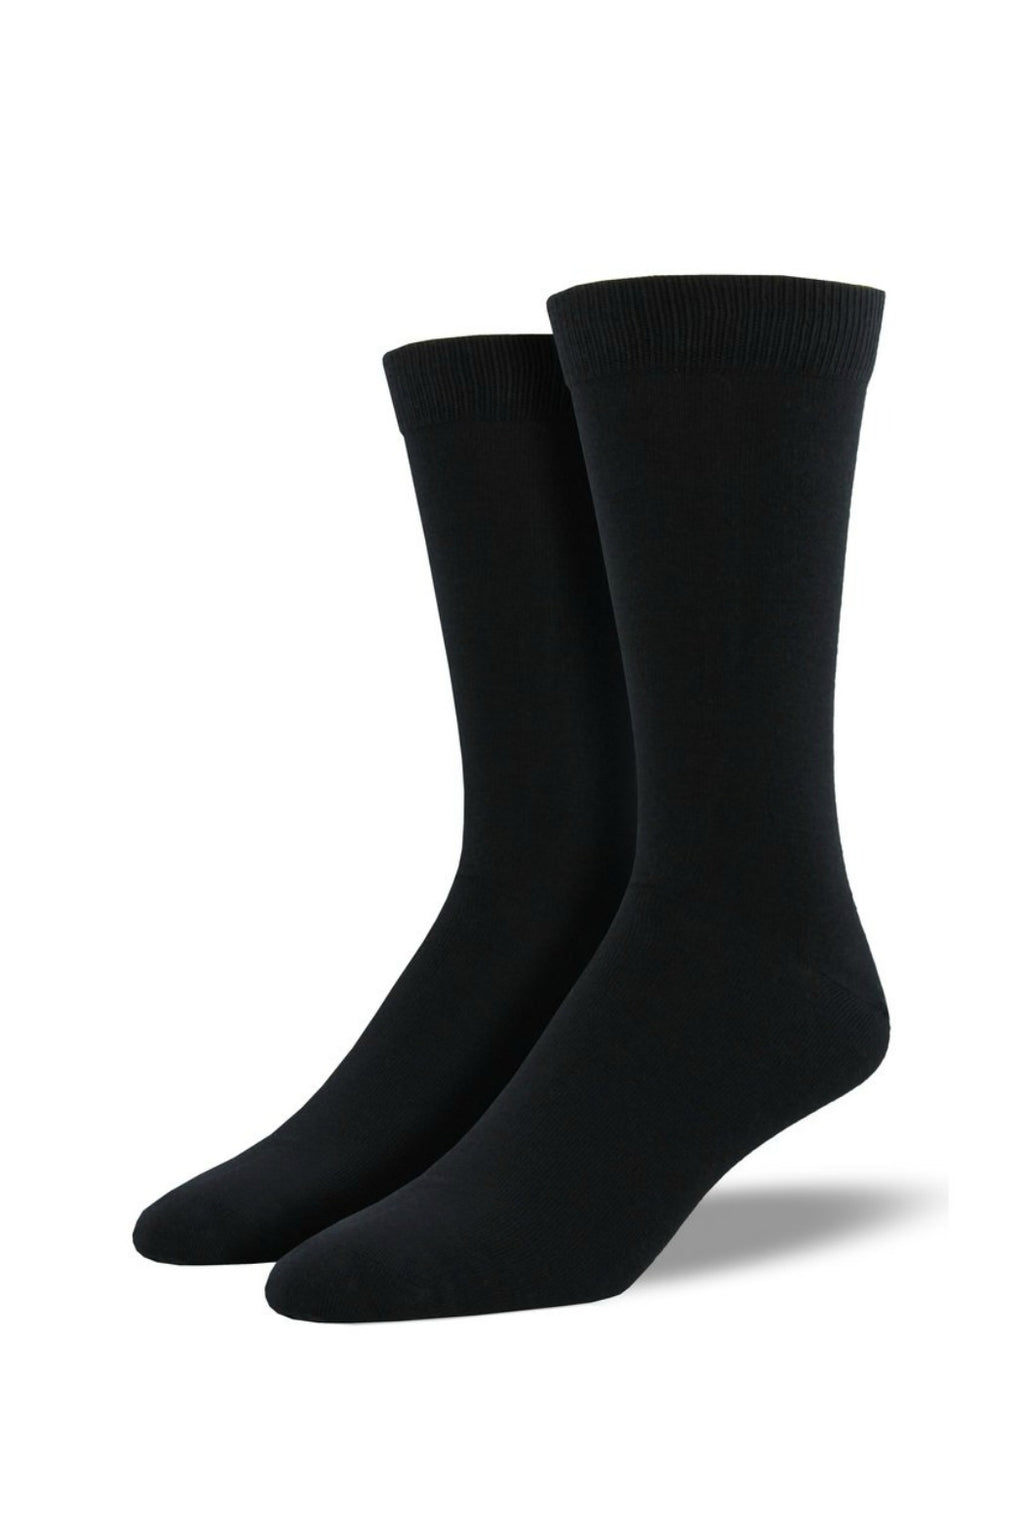 Socksmith Men's Bamboo Solid Socks - Black